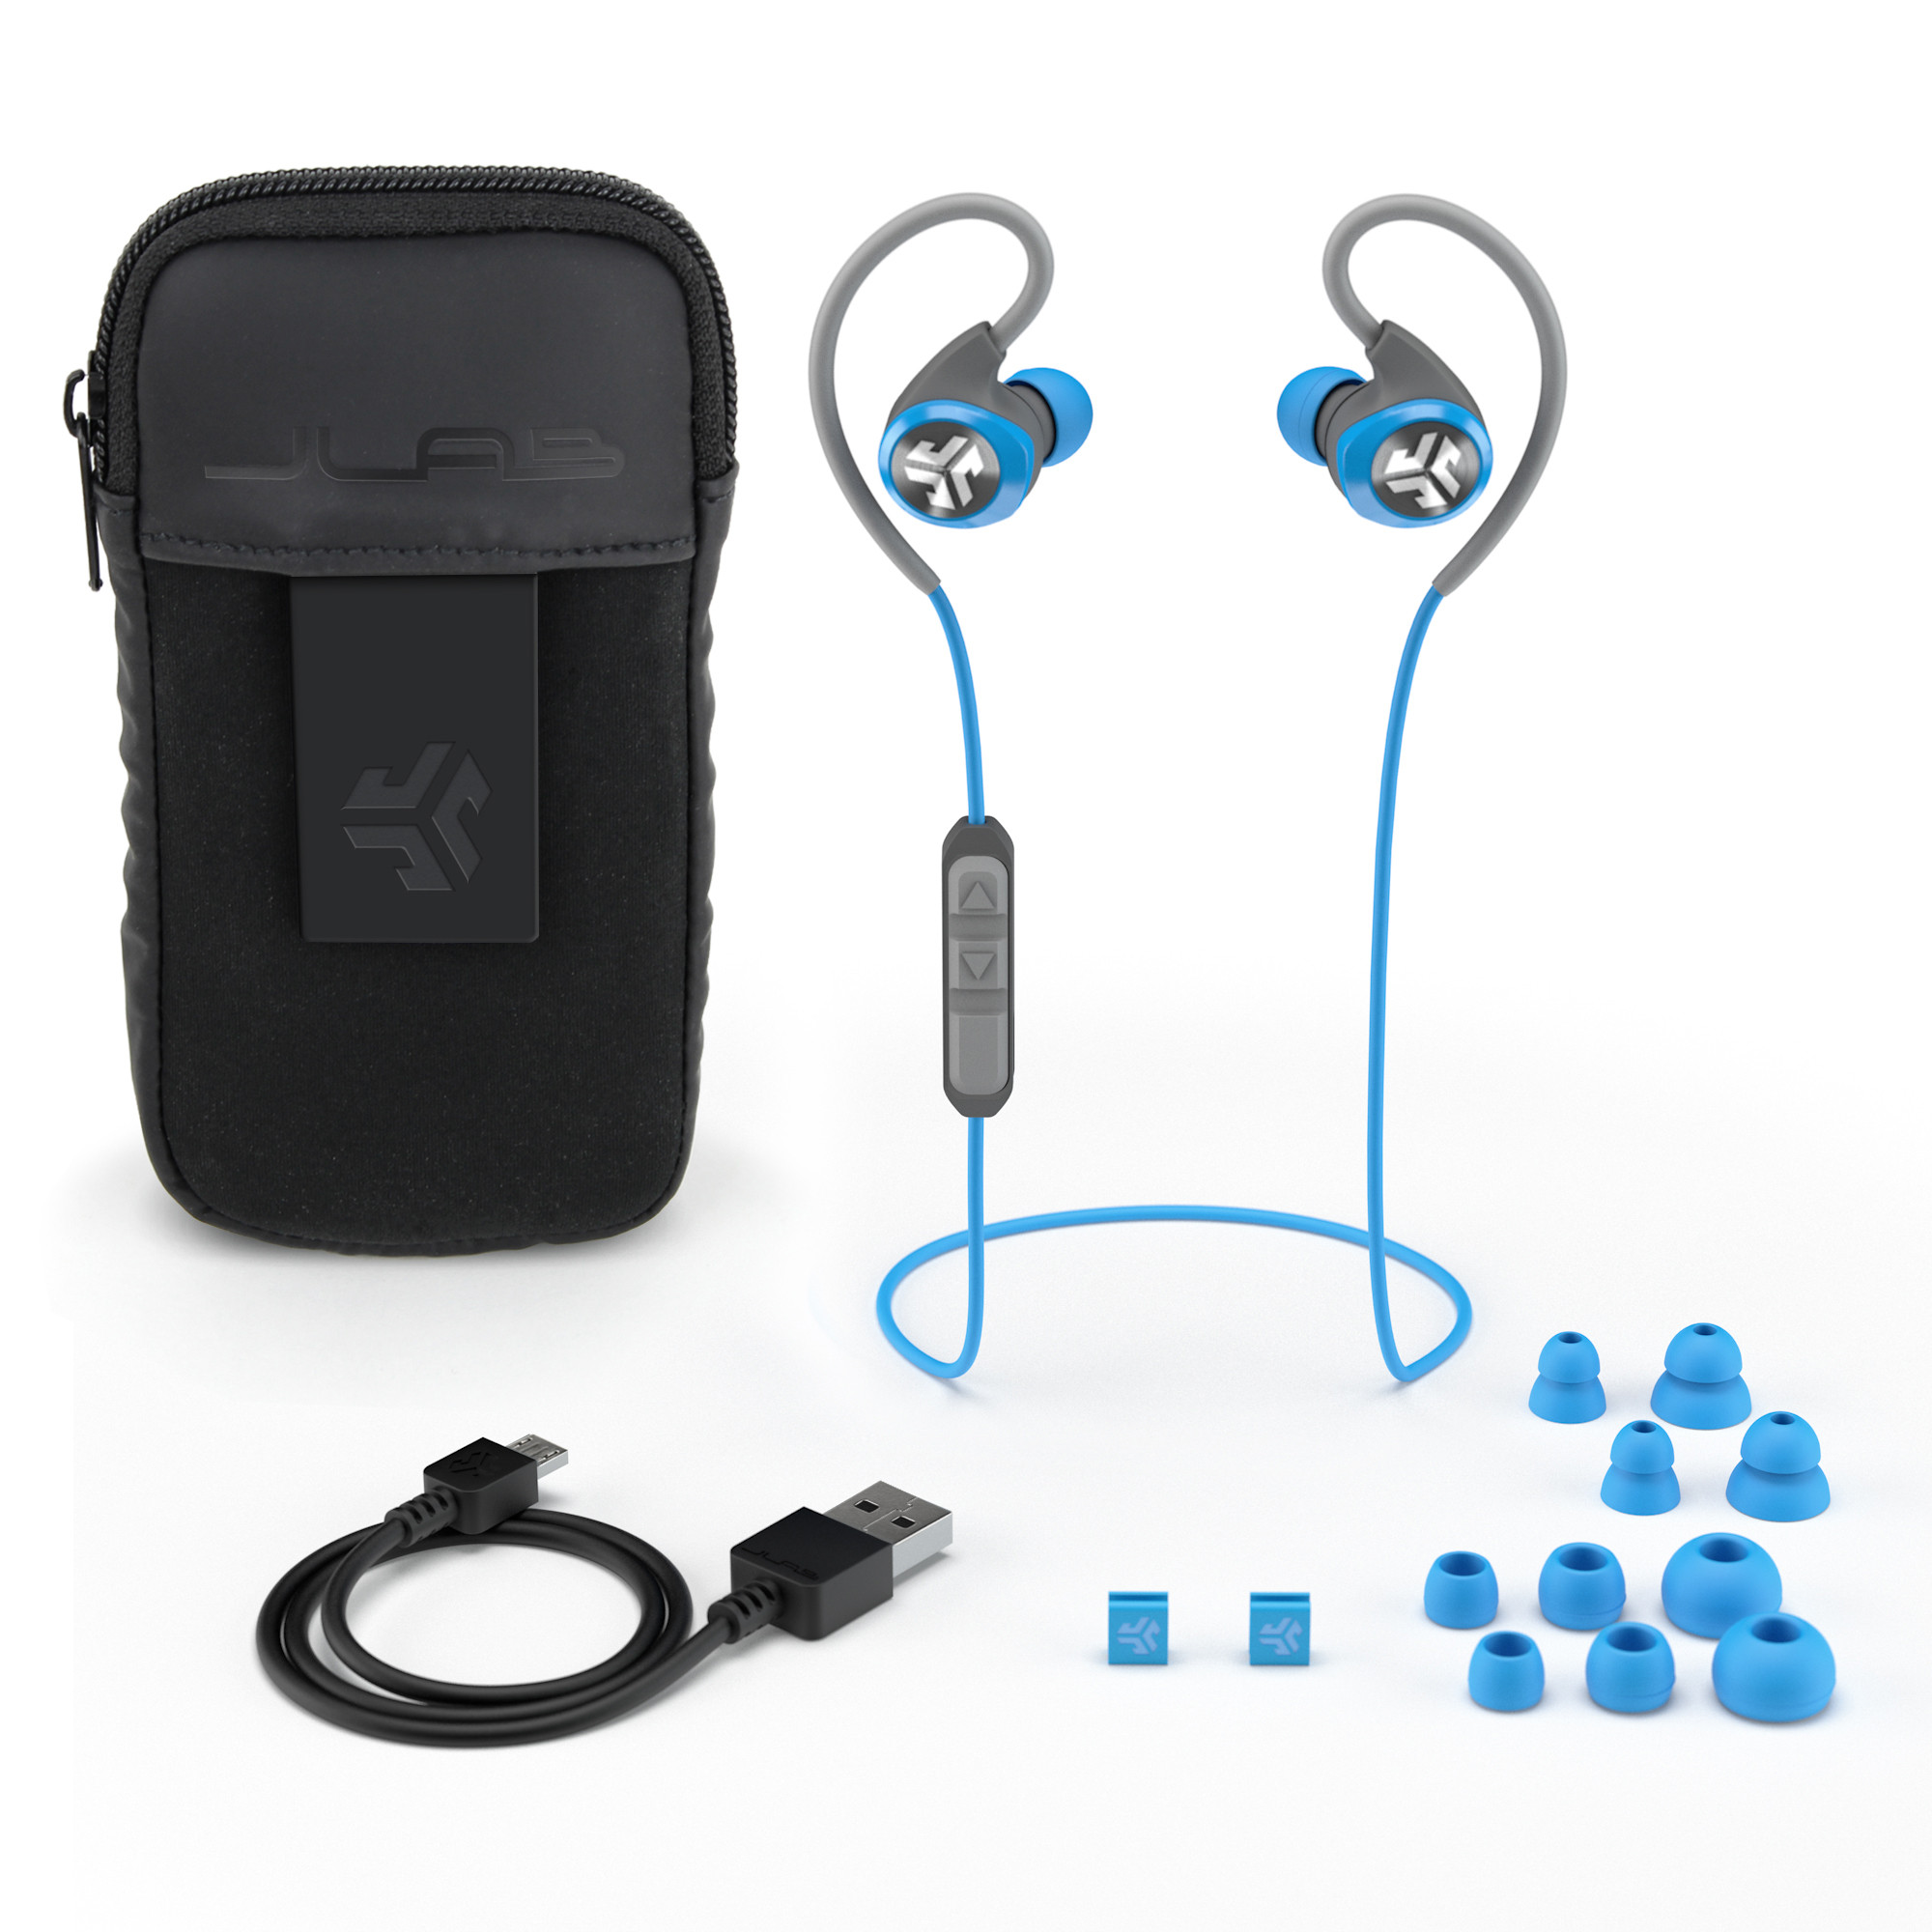 Earbuds bluetooth lg - lg bluetooth neck earbuds